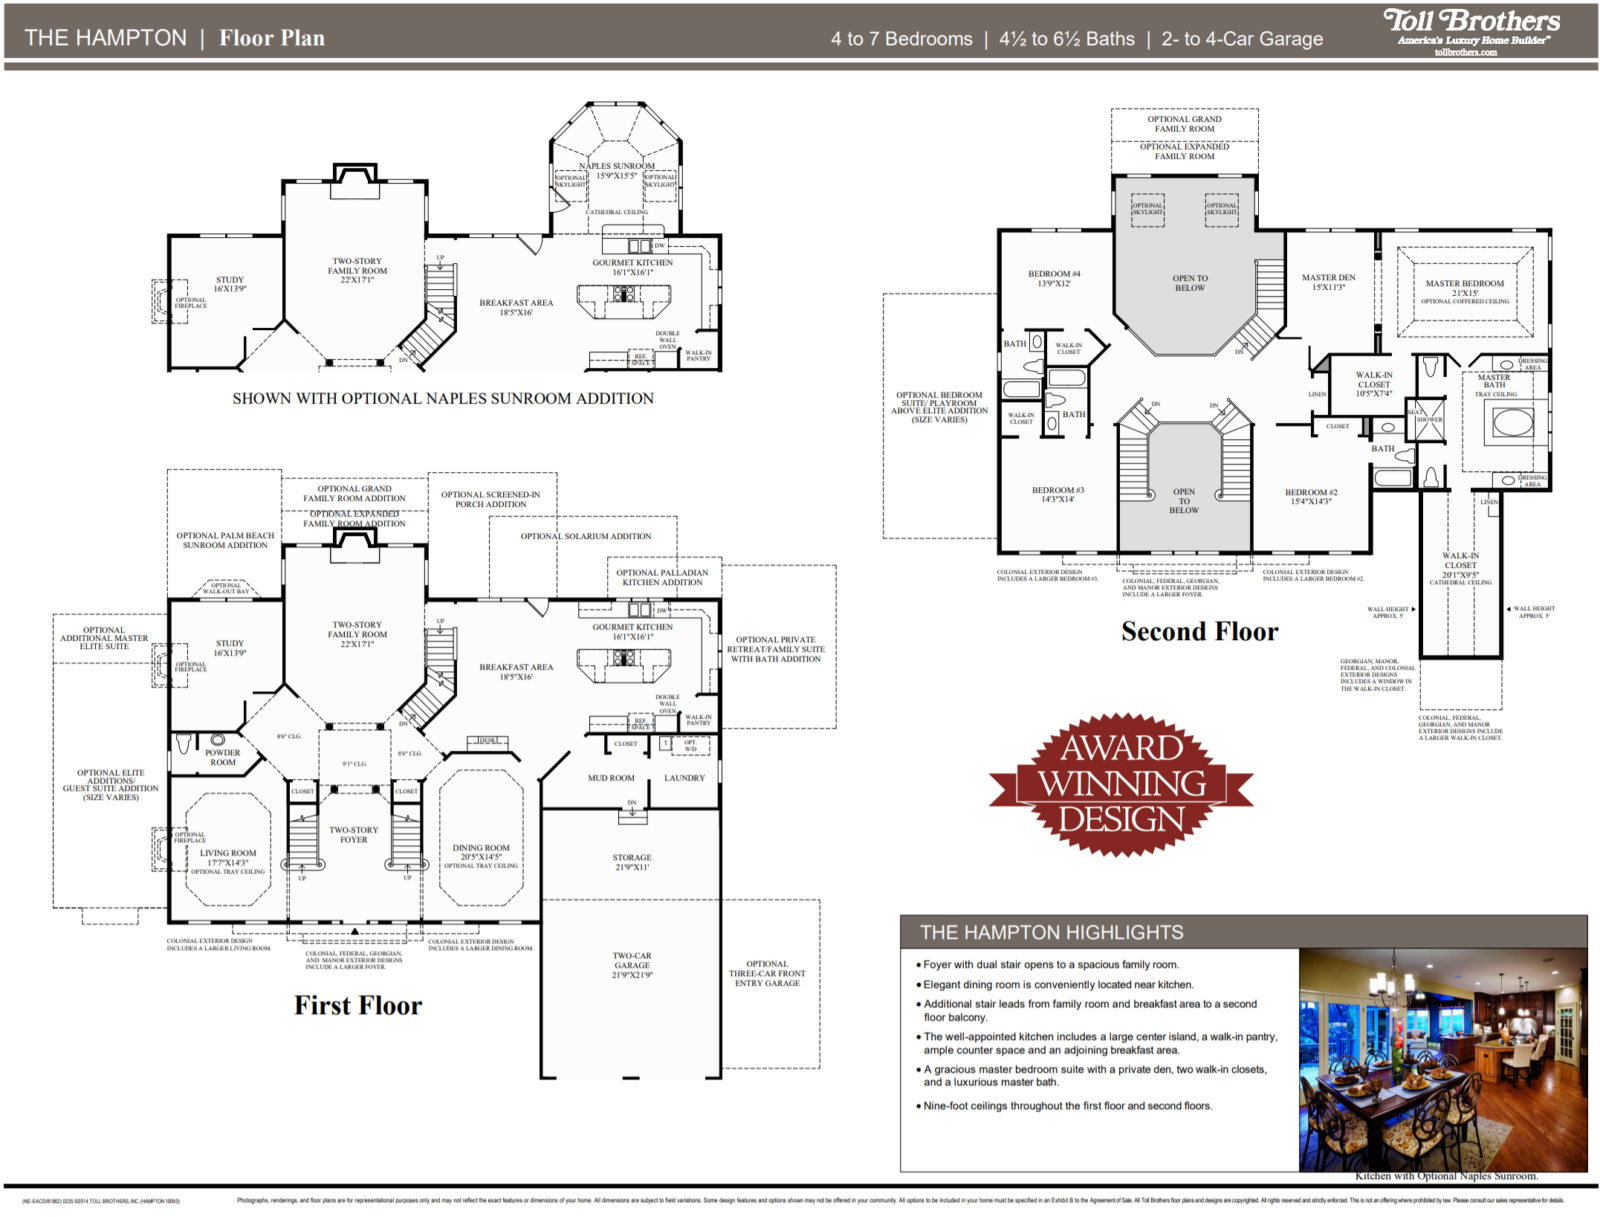 The Hampton Floor Plan featuring the optional Naples Sunroom Addition